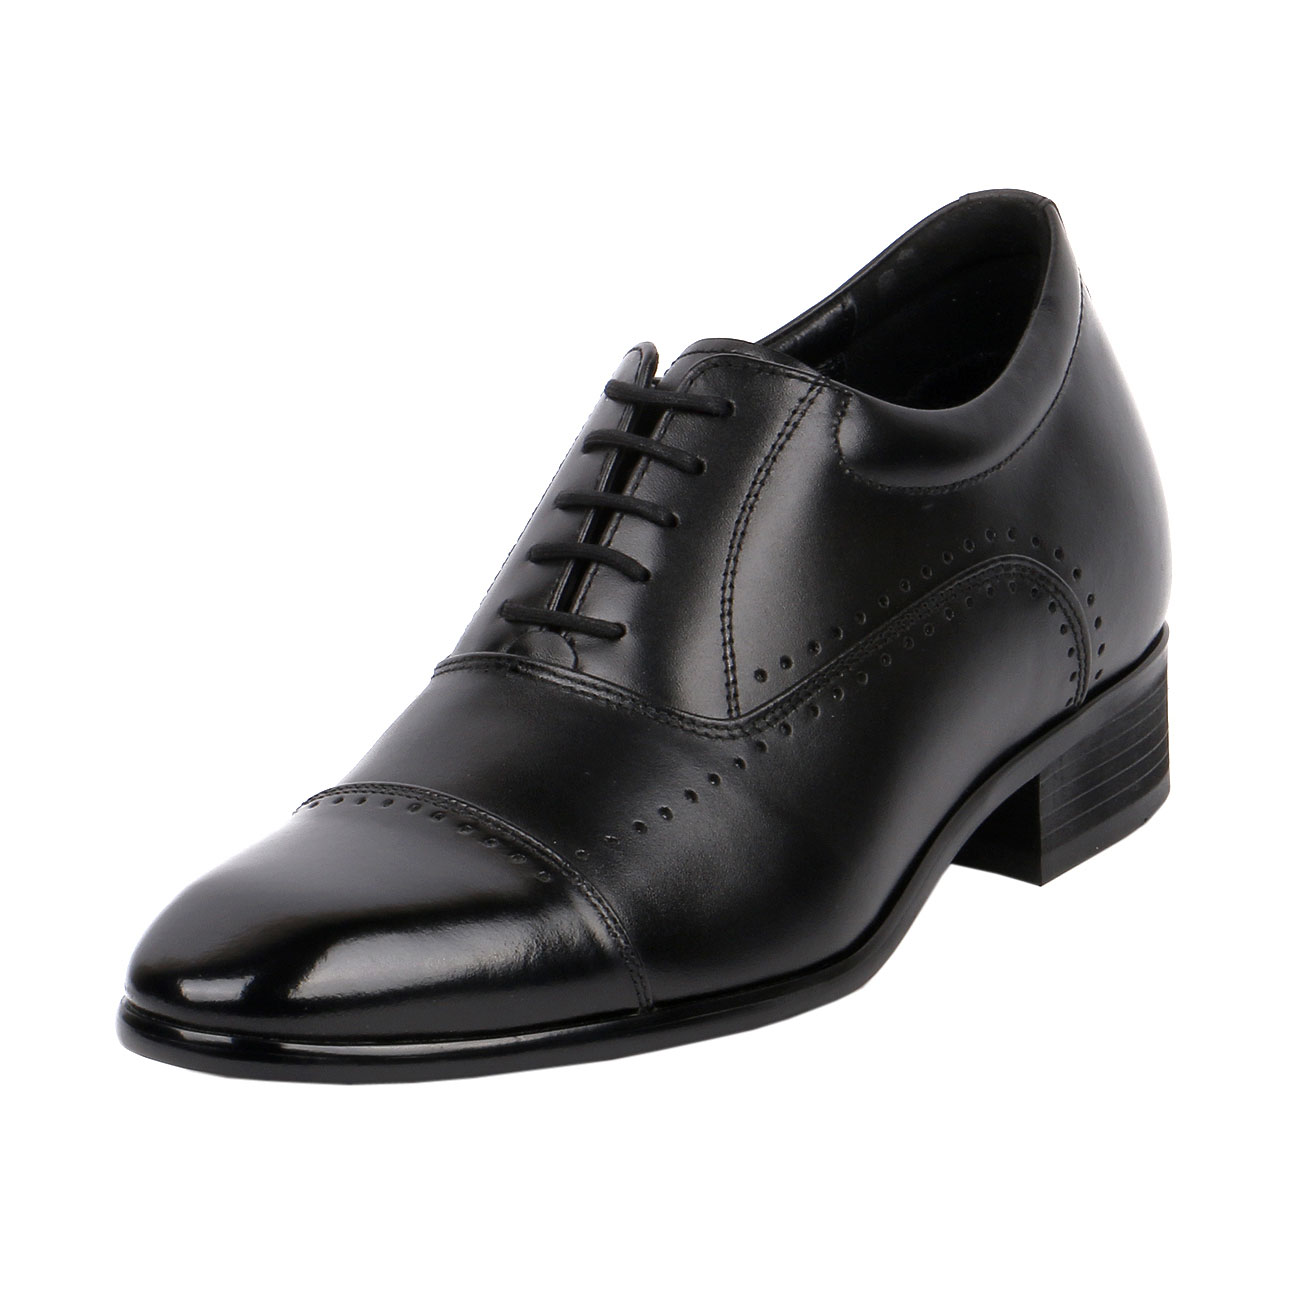 JW505 Limited Version Classic Cap-Toe Oxford Shoe Suiting Up For A Board Meeting or A Formal Event-1